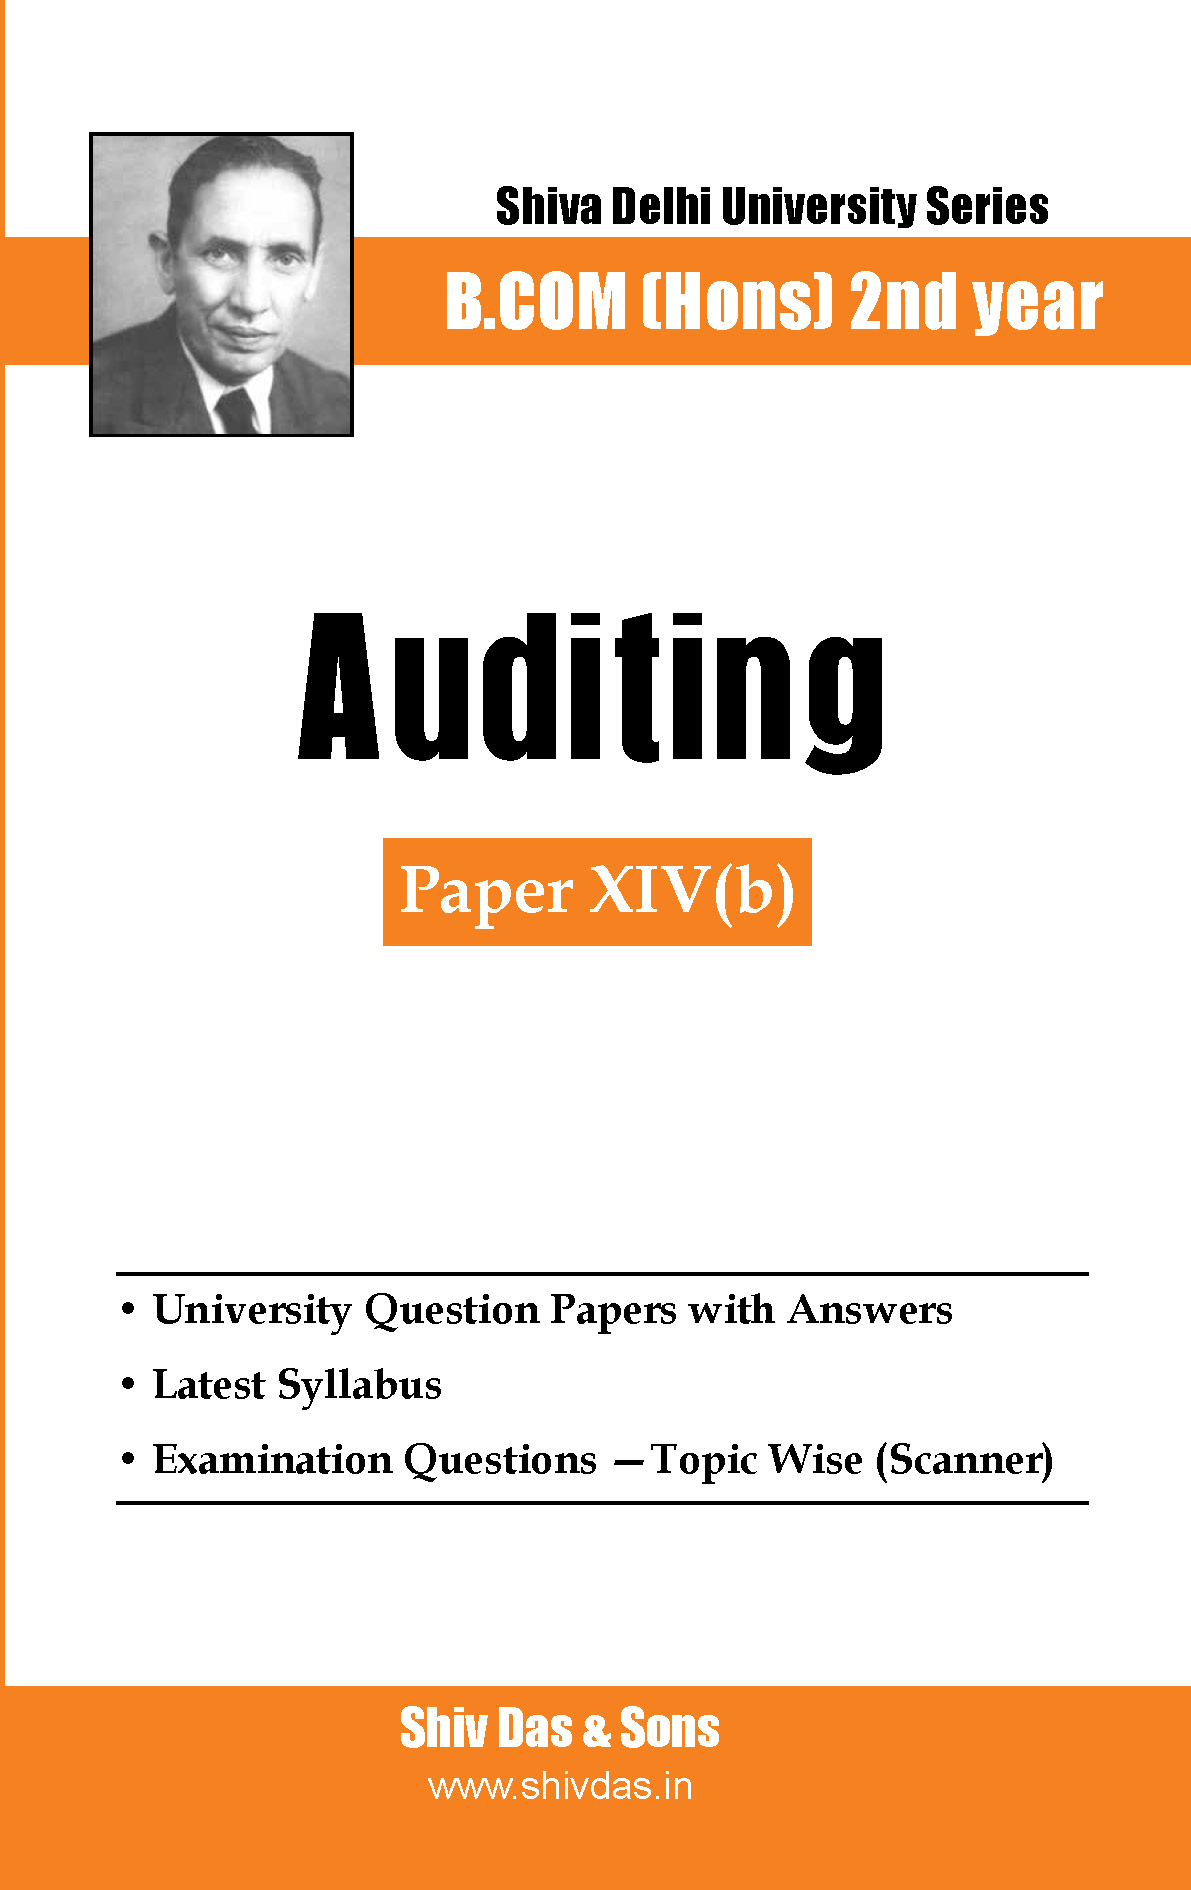 Auditing for B.Com Hons SOL/External 2nd Year